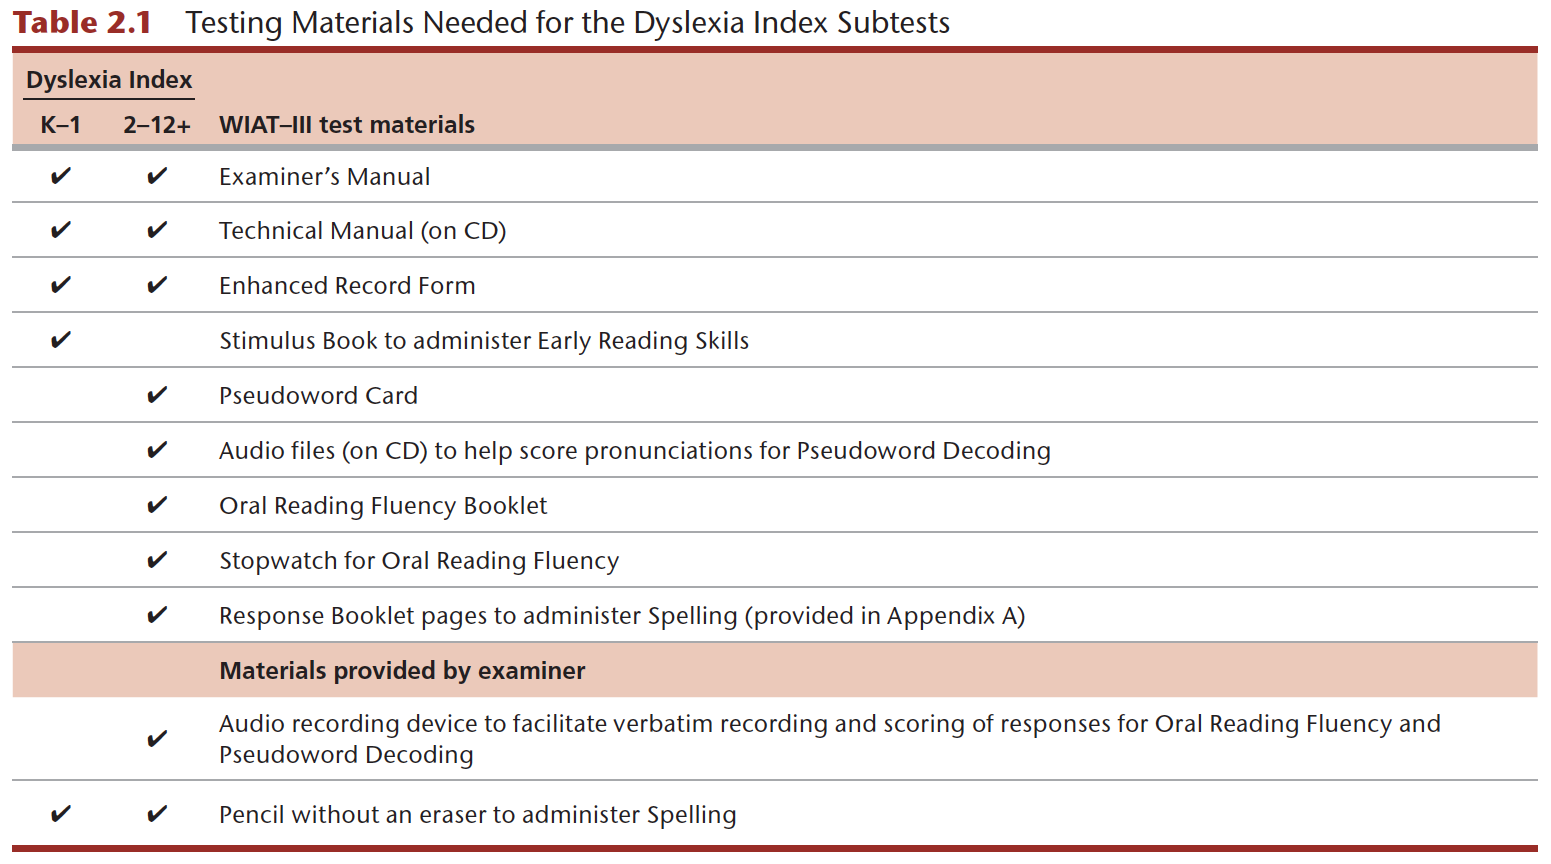 WIAT-III Testing Materials Needed for the Dyslexia Index Subtests